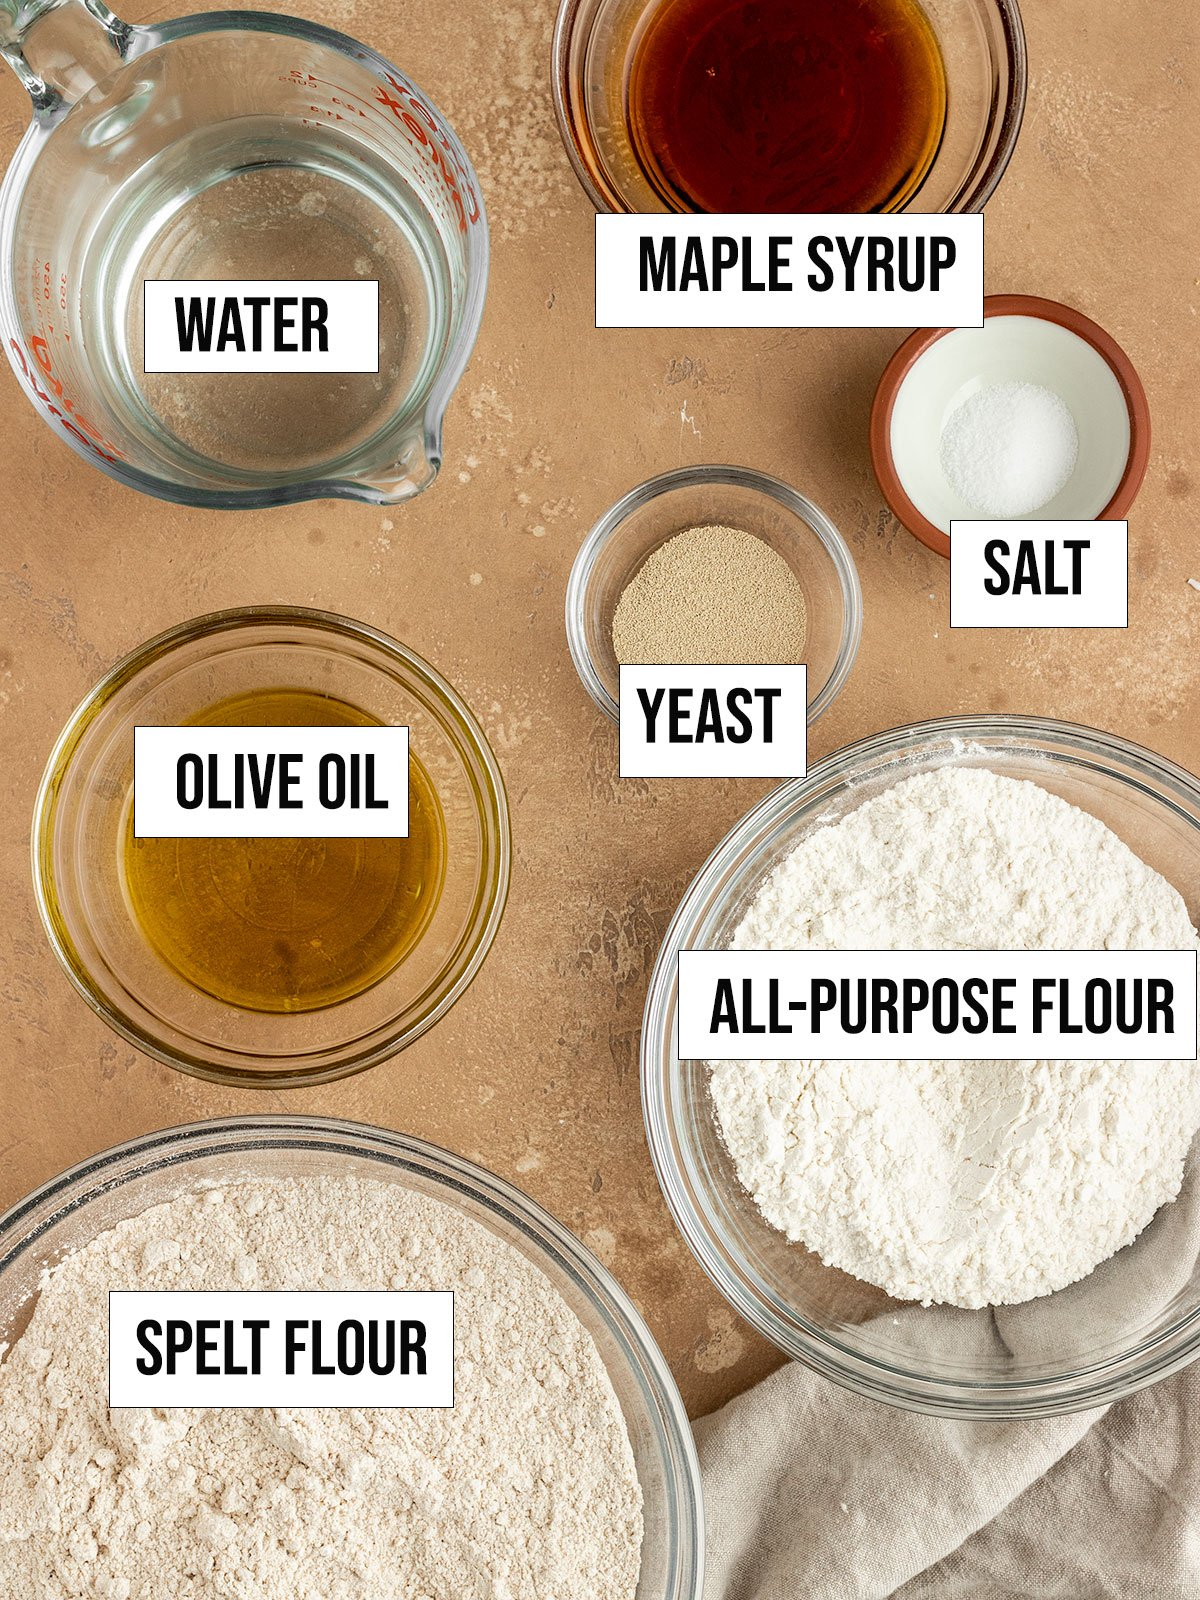 ingredients including spelt flour, all-purpose flour, maple syrup, olive oil, water, yeast, and salt